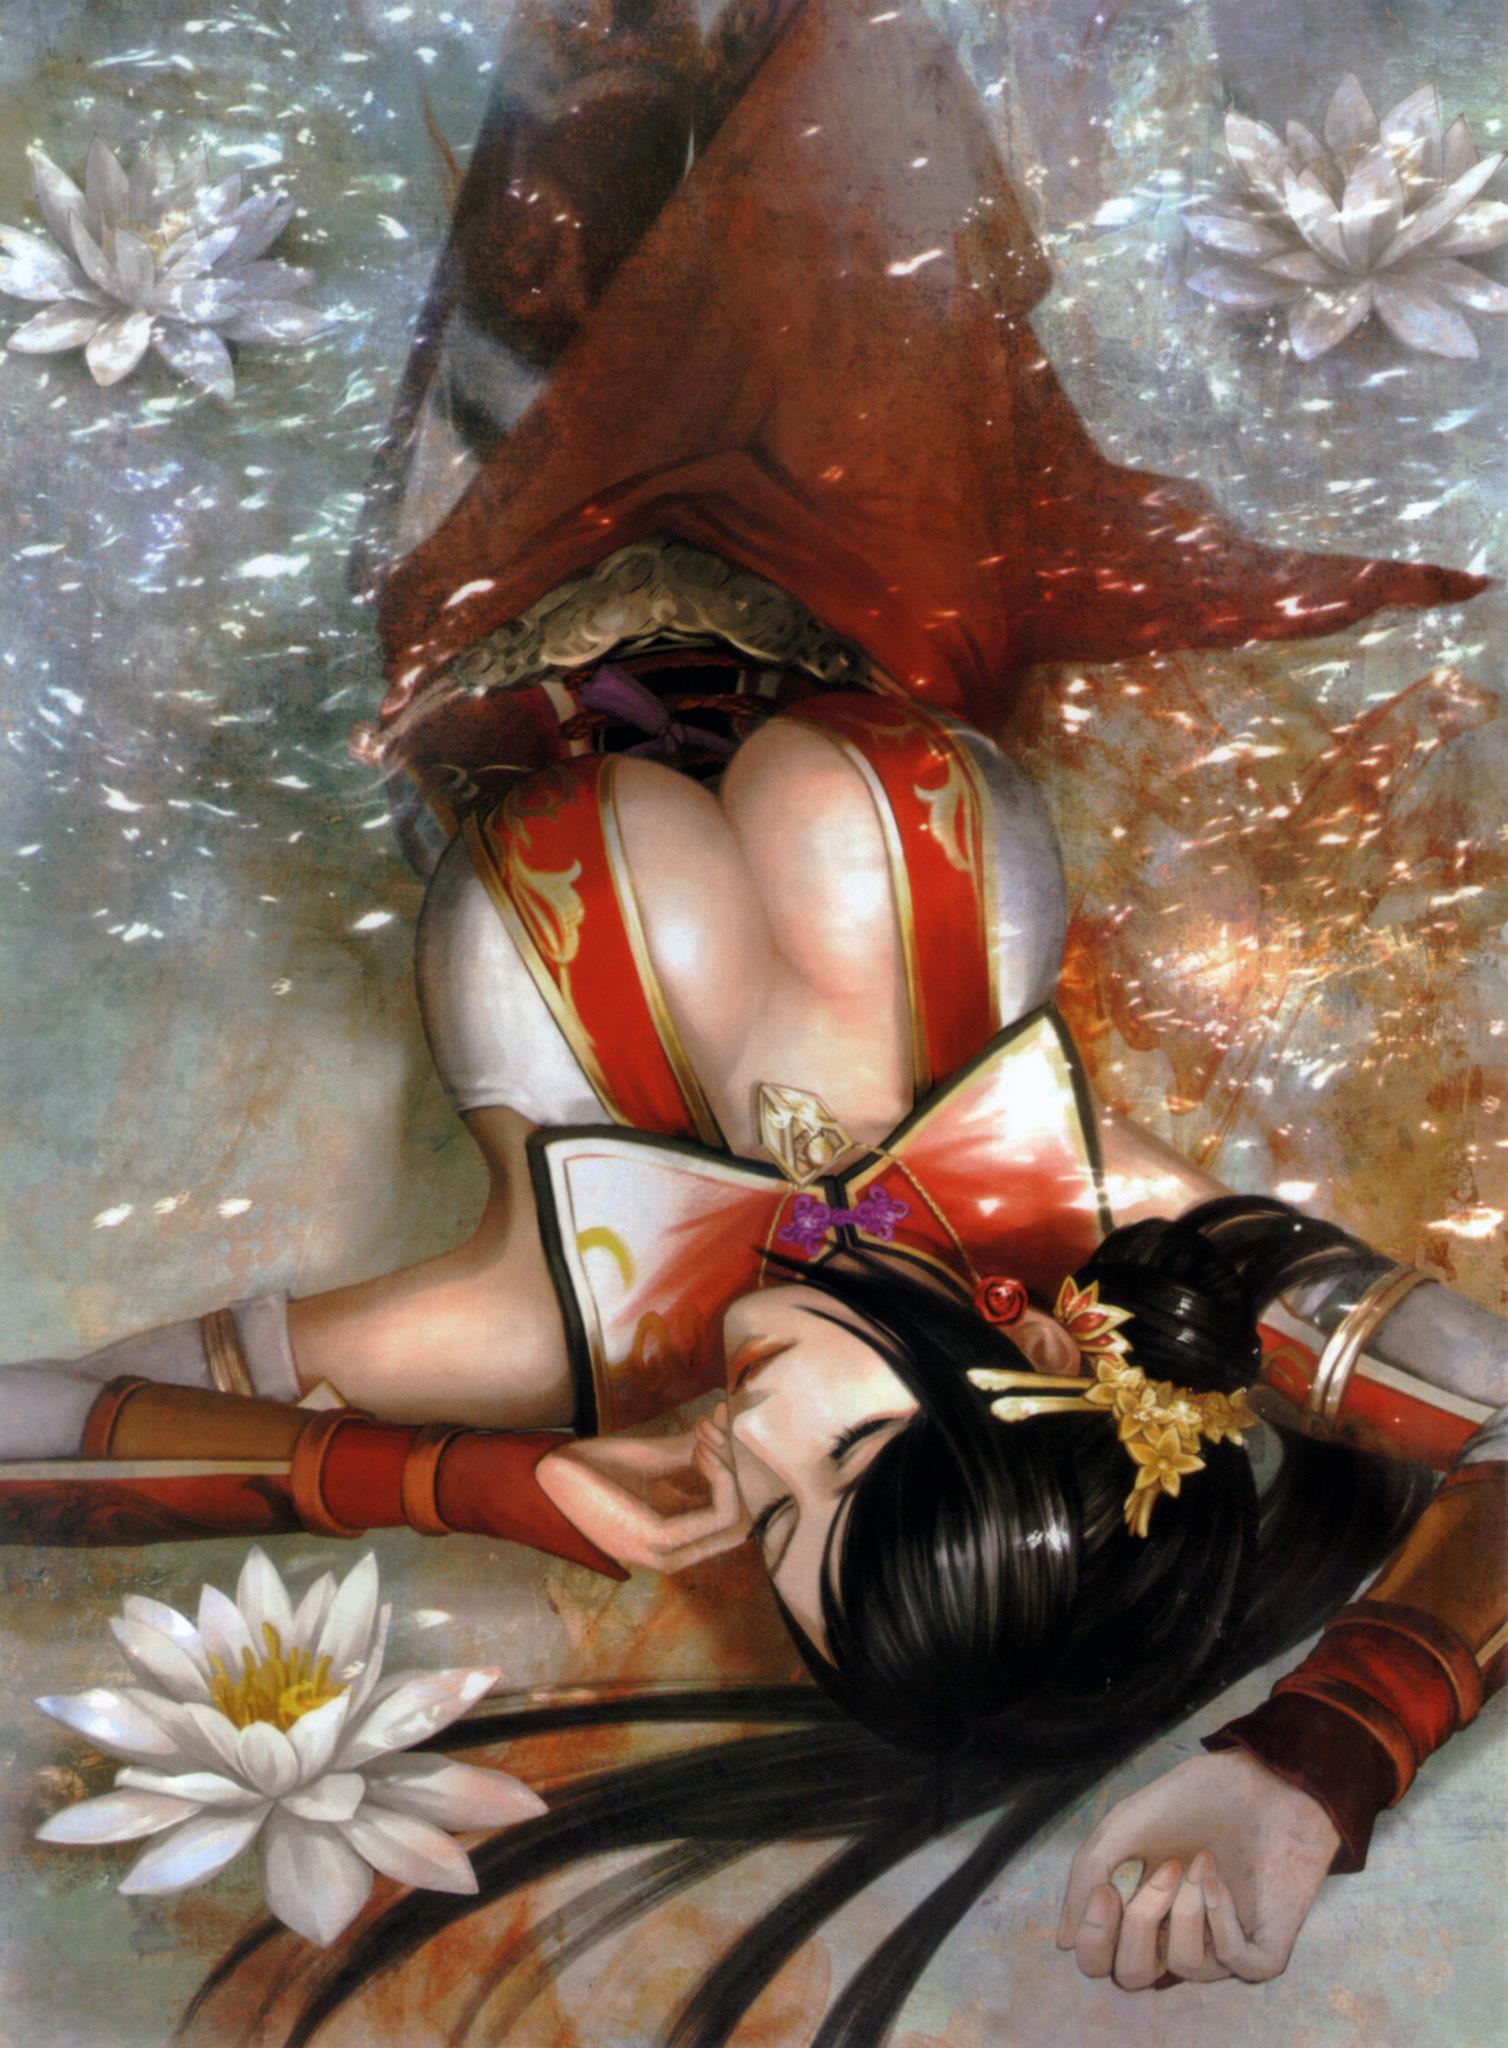 Dynasty warriors erotic adult pic